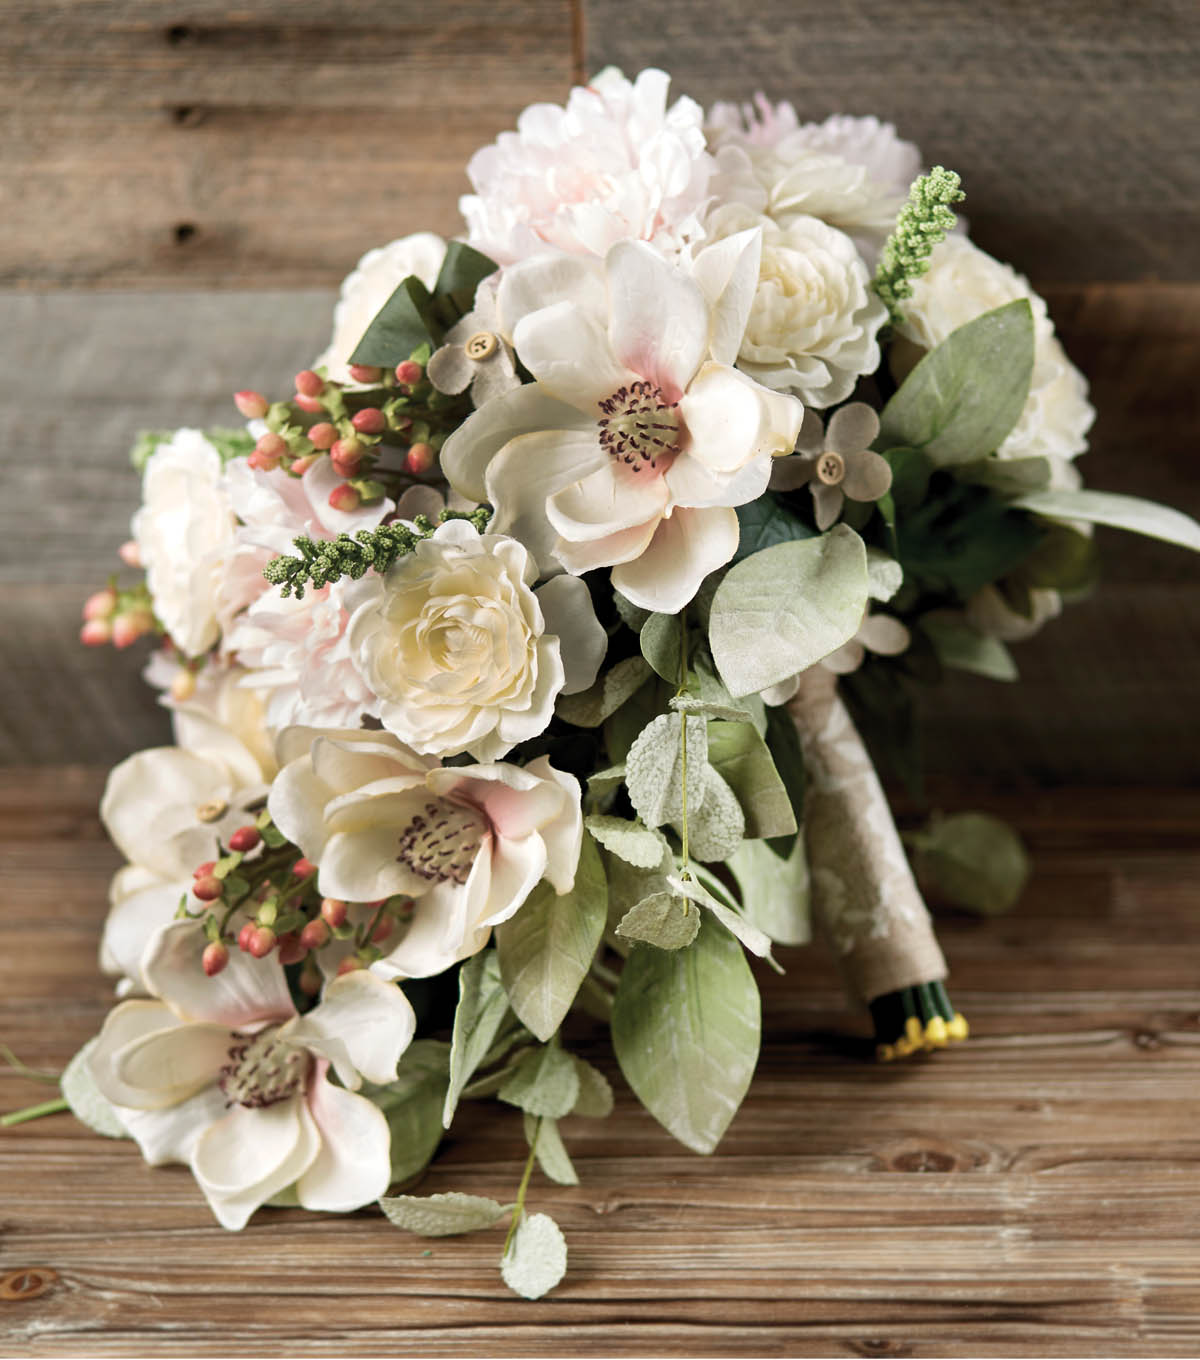 How to make a wedding bridal bouquet joann how to make a wedding bridal bouquet izmirmasajfo